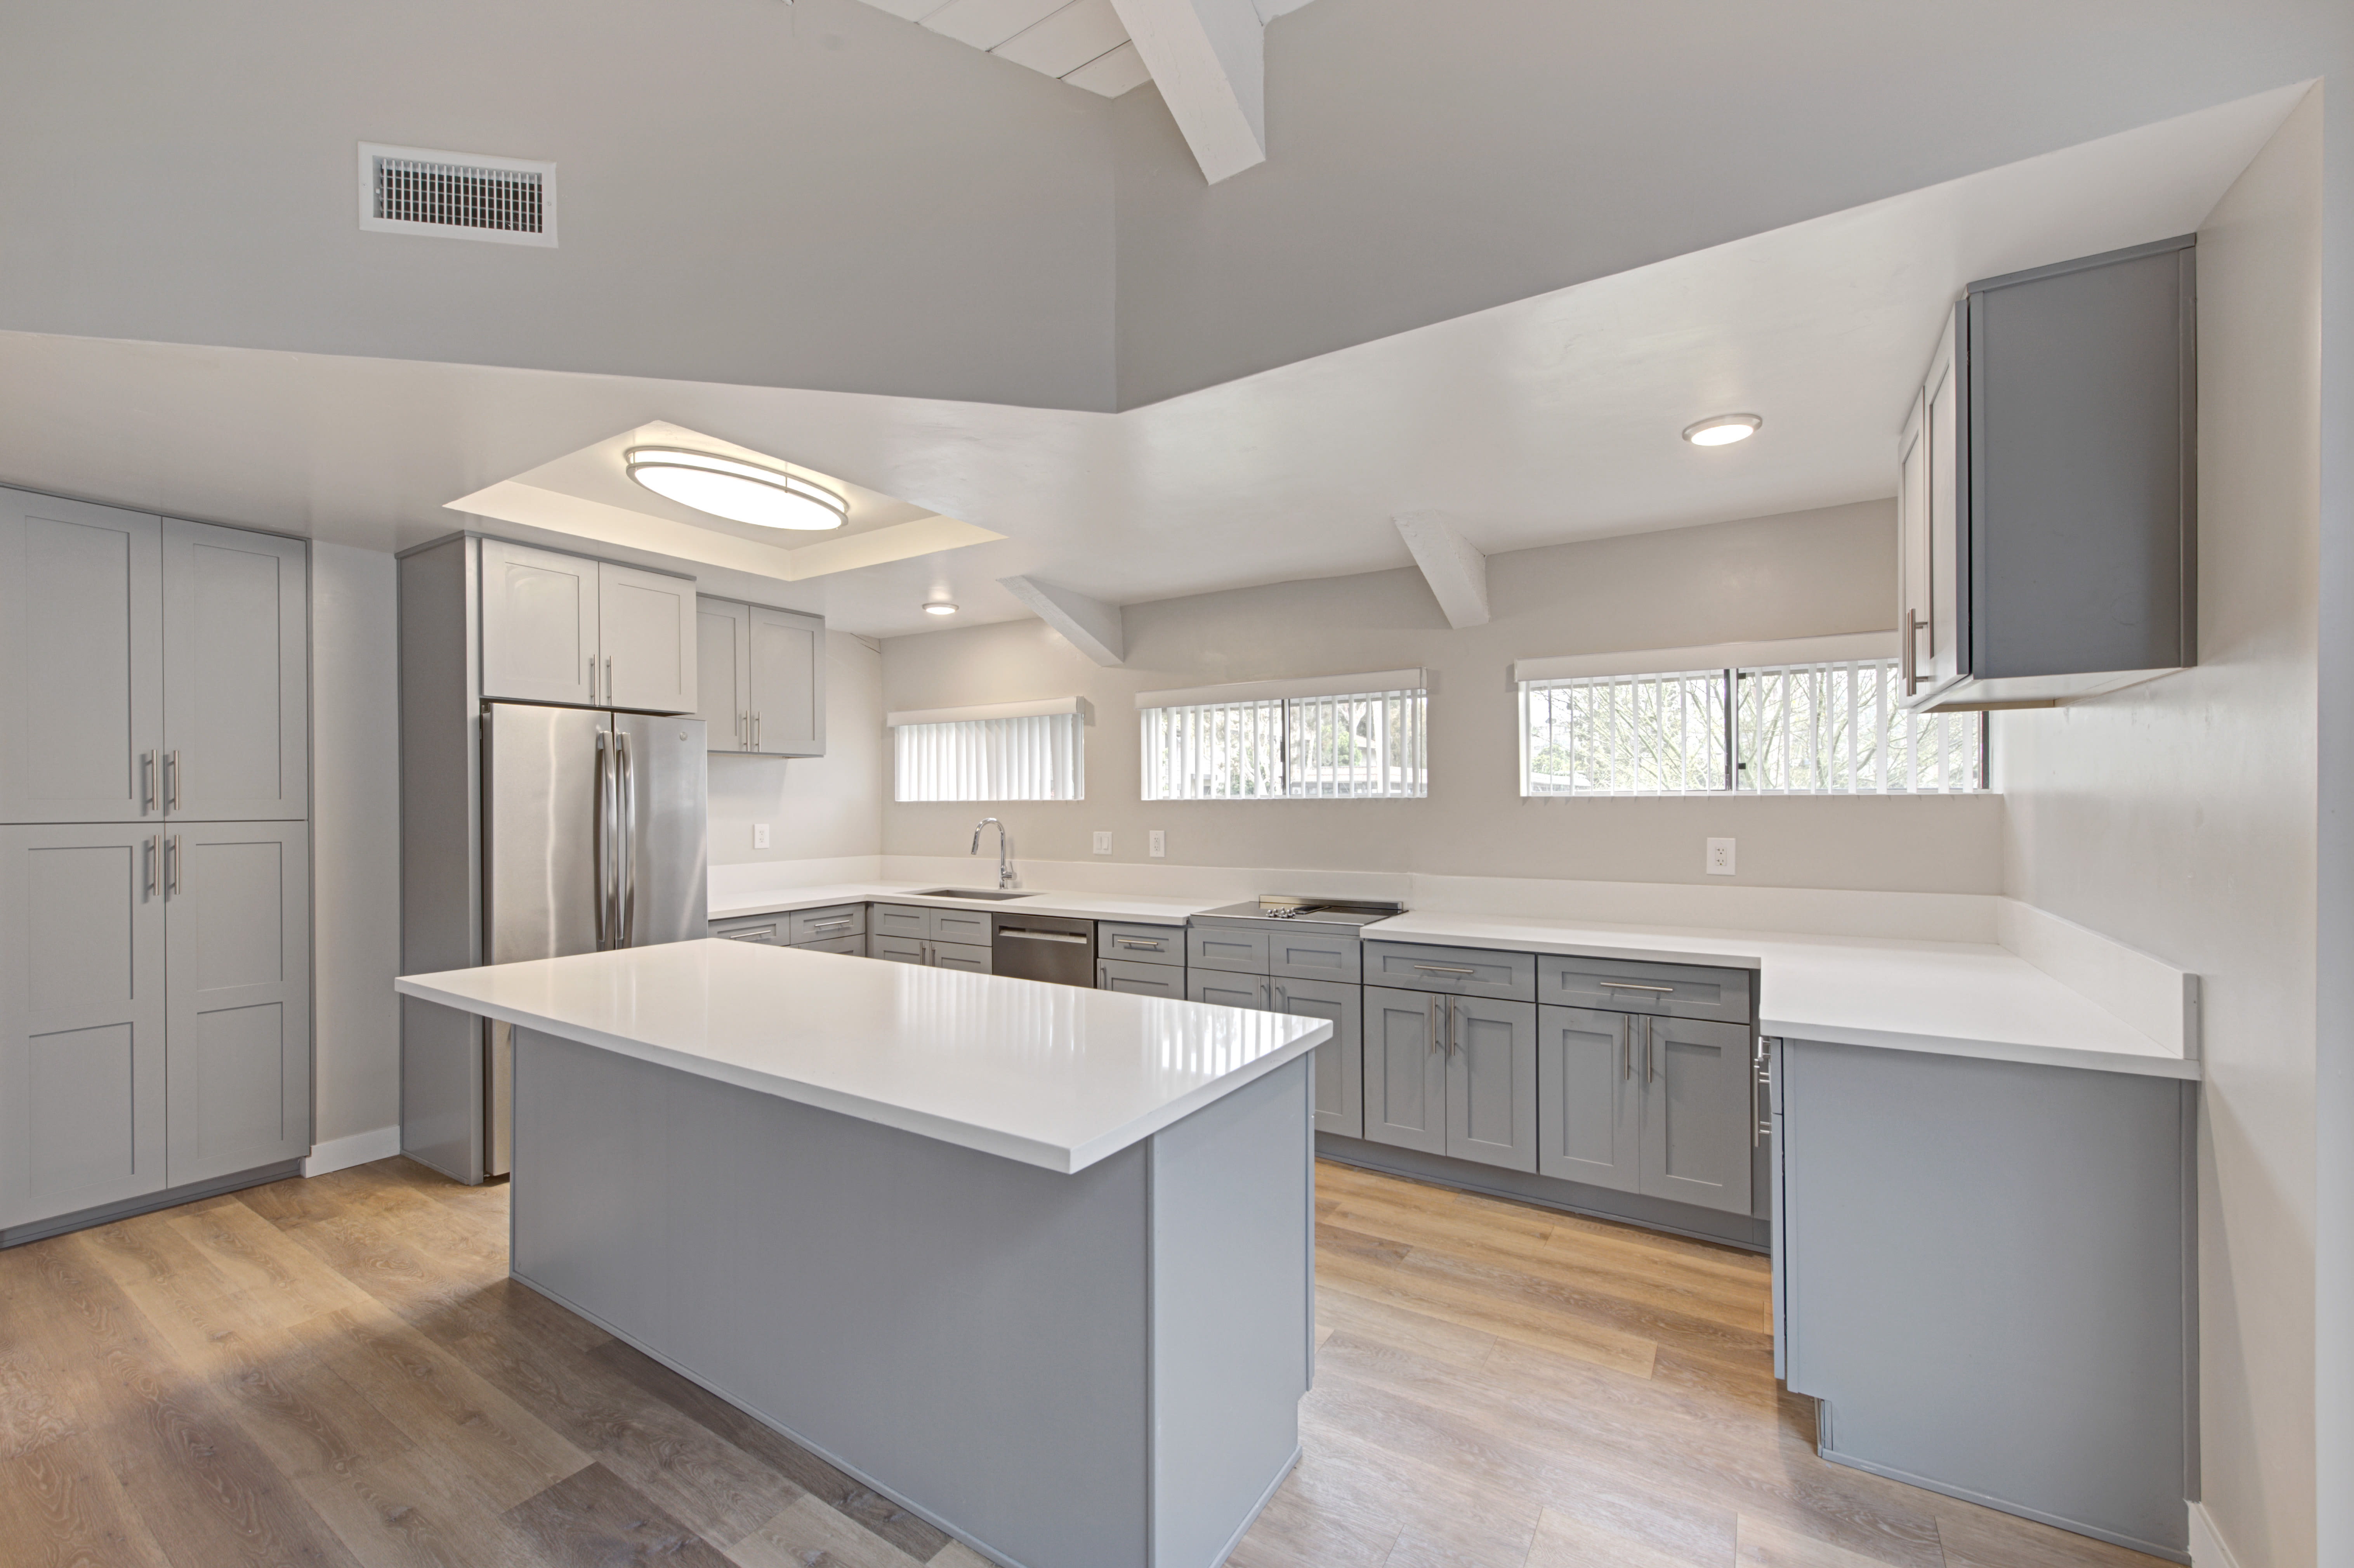 Kitchens with stainless steel appliances at Sofi Ventura in Ventura, California